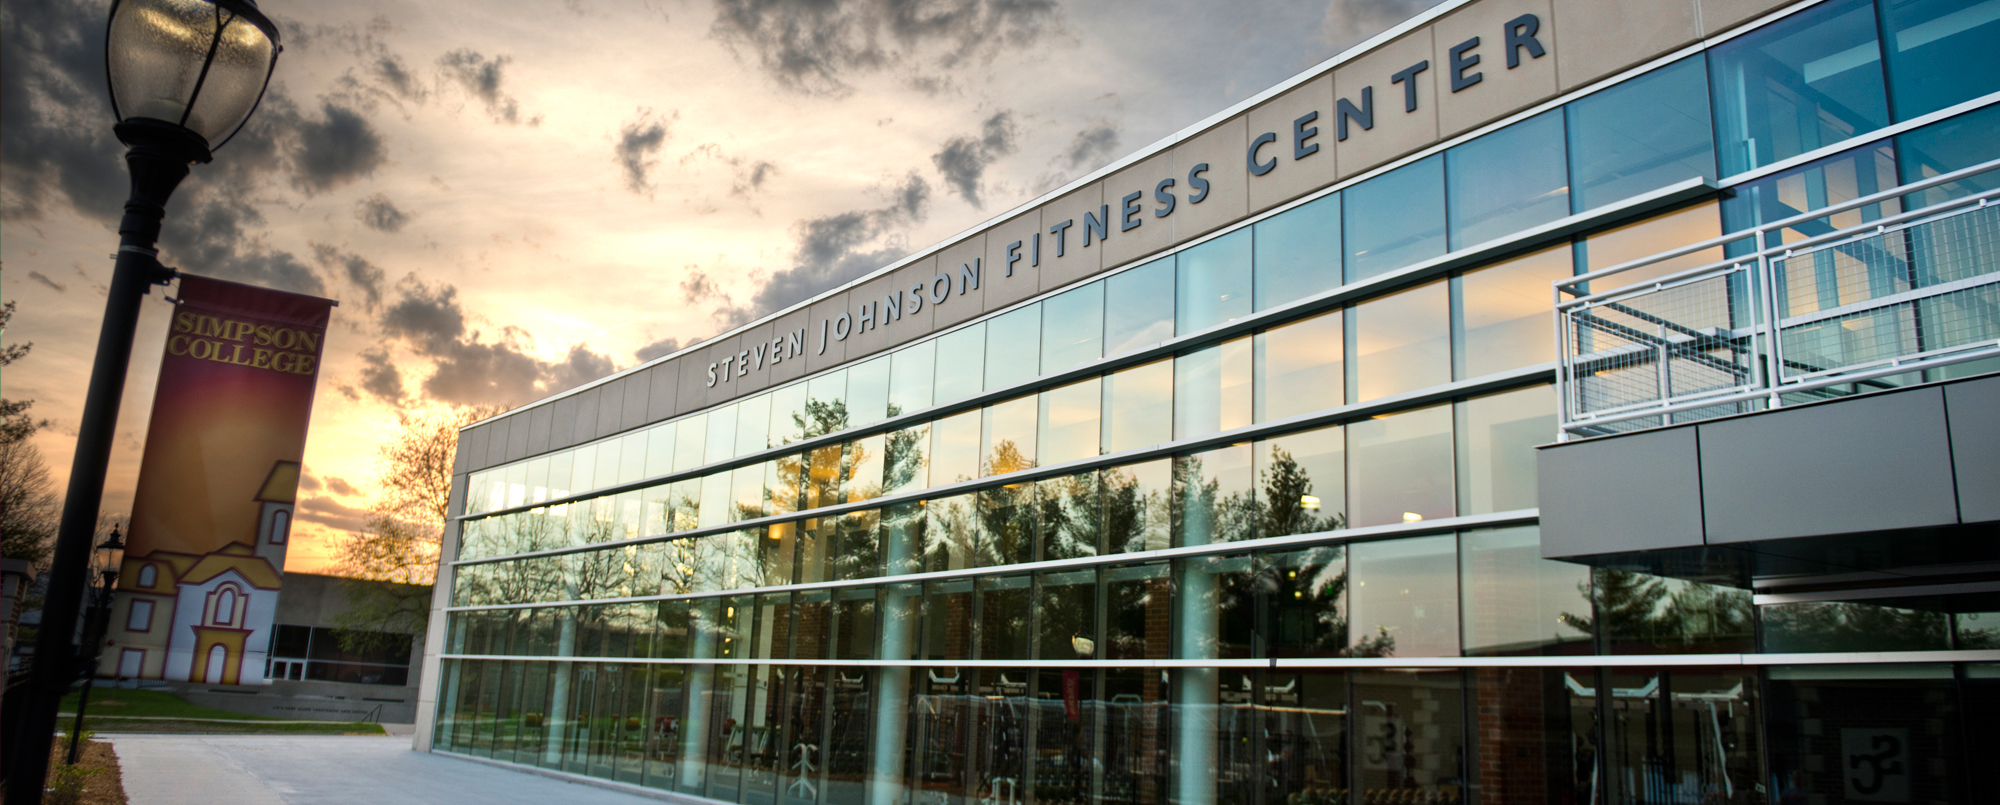 Steven Johnson Fitness Center